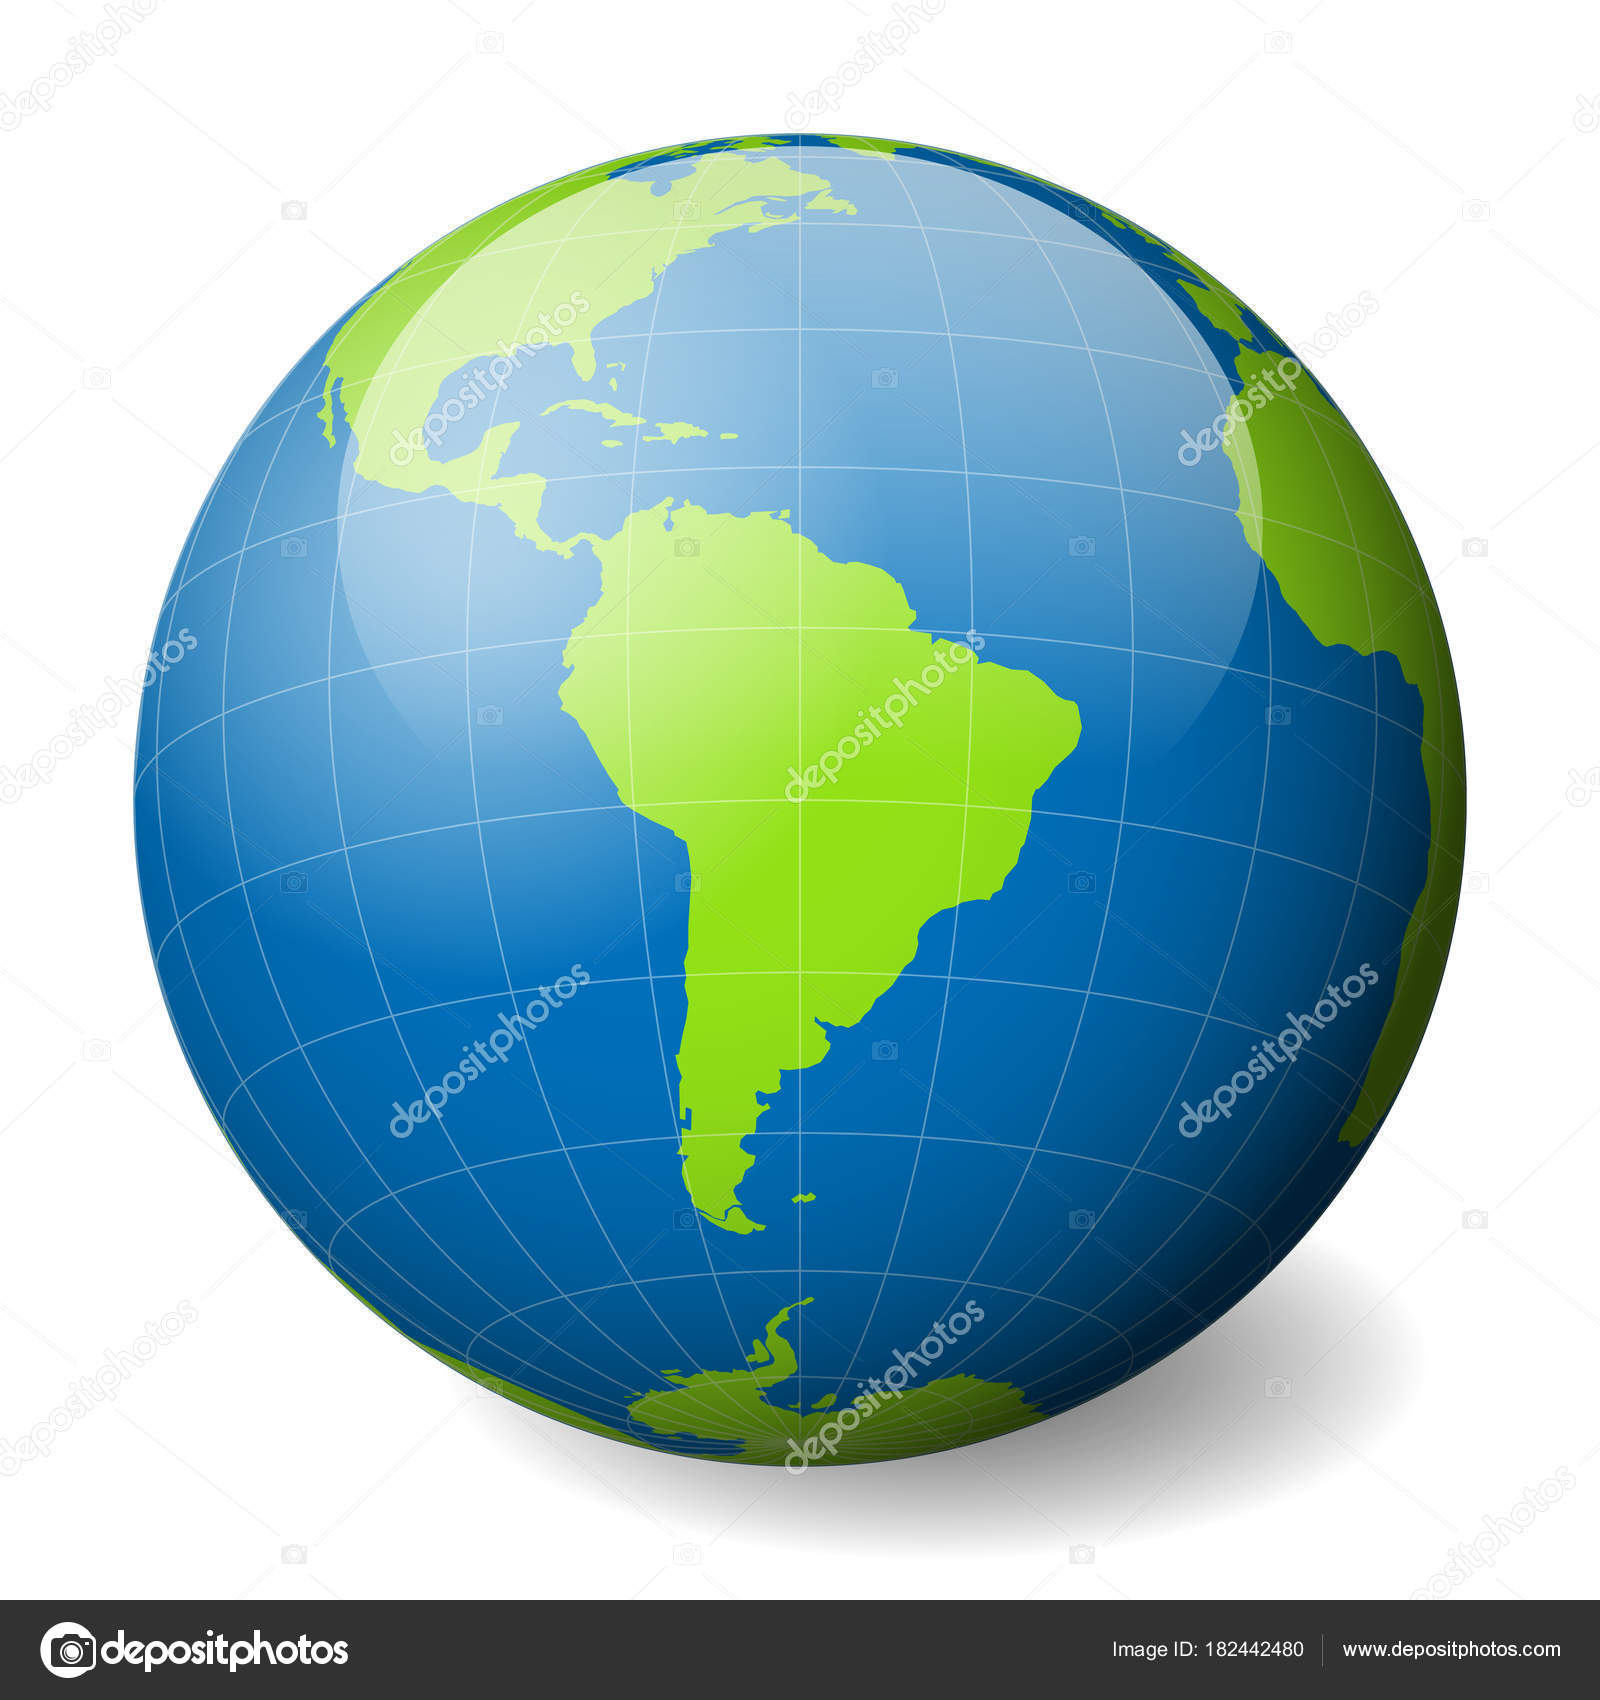 Earth globe with green world map and blue seas and oceans focused on earth globe with green world map and blue seas and oceans focused on south america with thin white meridians and parallels 3d glossy sphere vector gumiabroncs Gallery